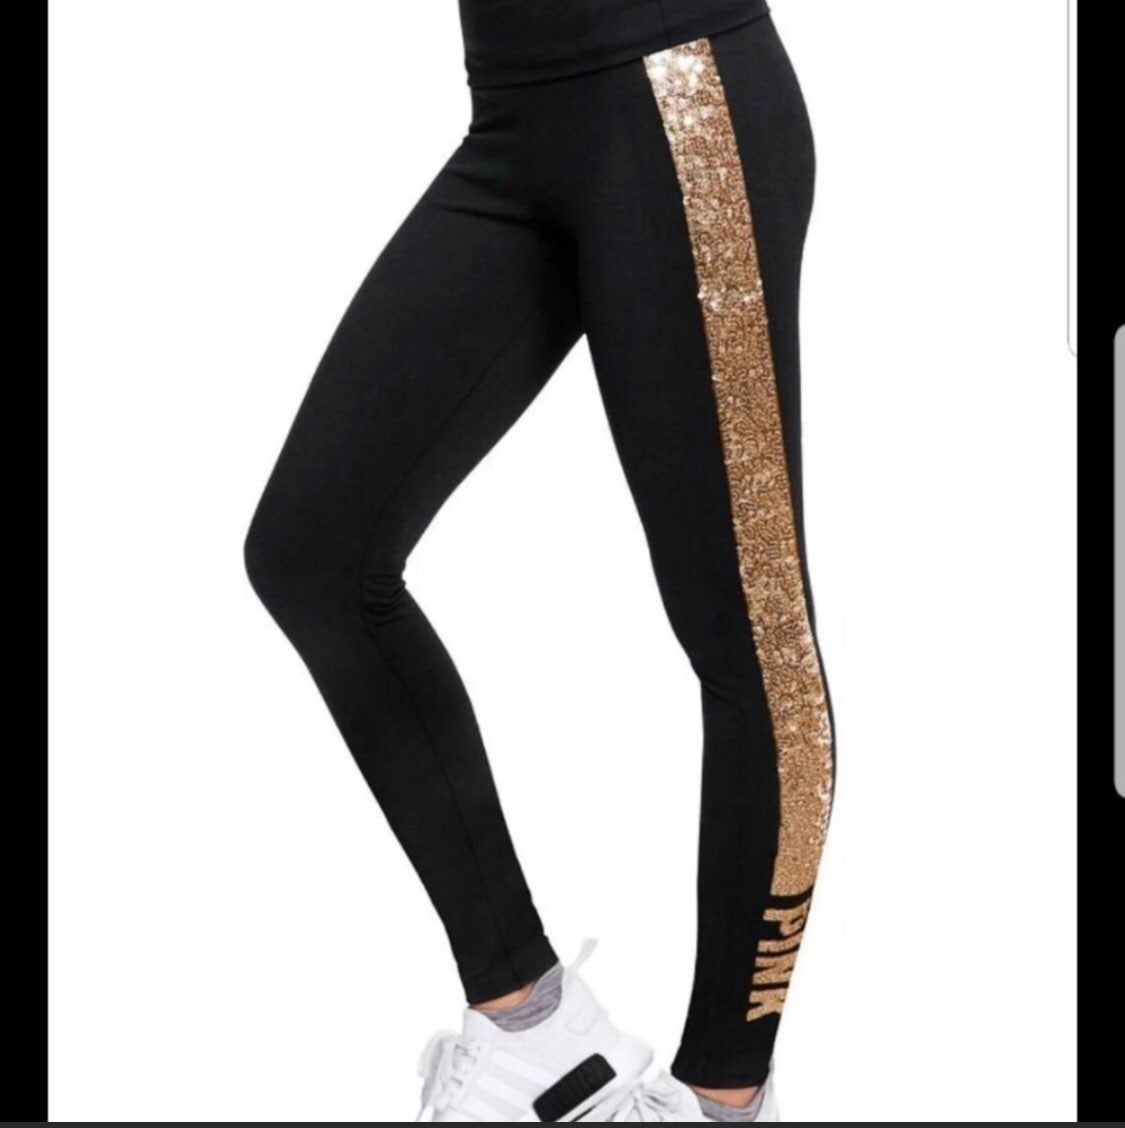 0851b17c28 Victoria's secret PINK bling leggings. The sequins are gold and the leggings  are black.